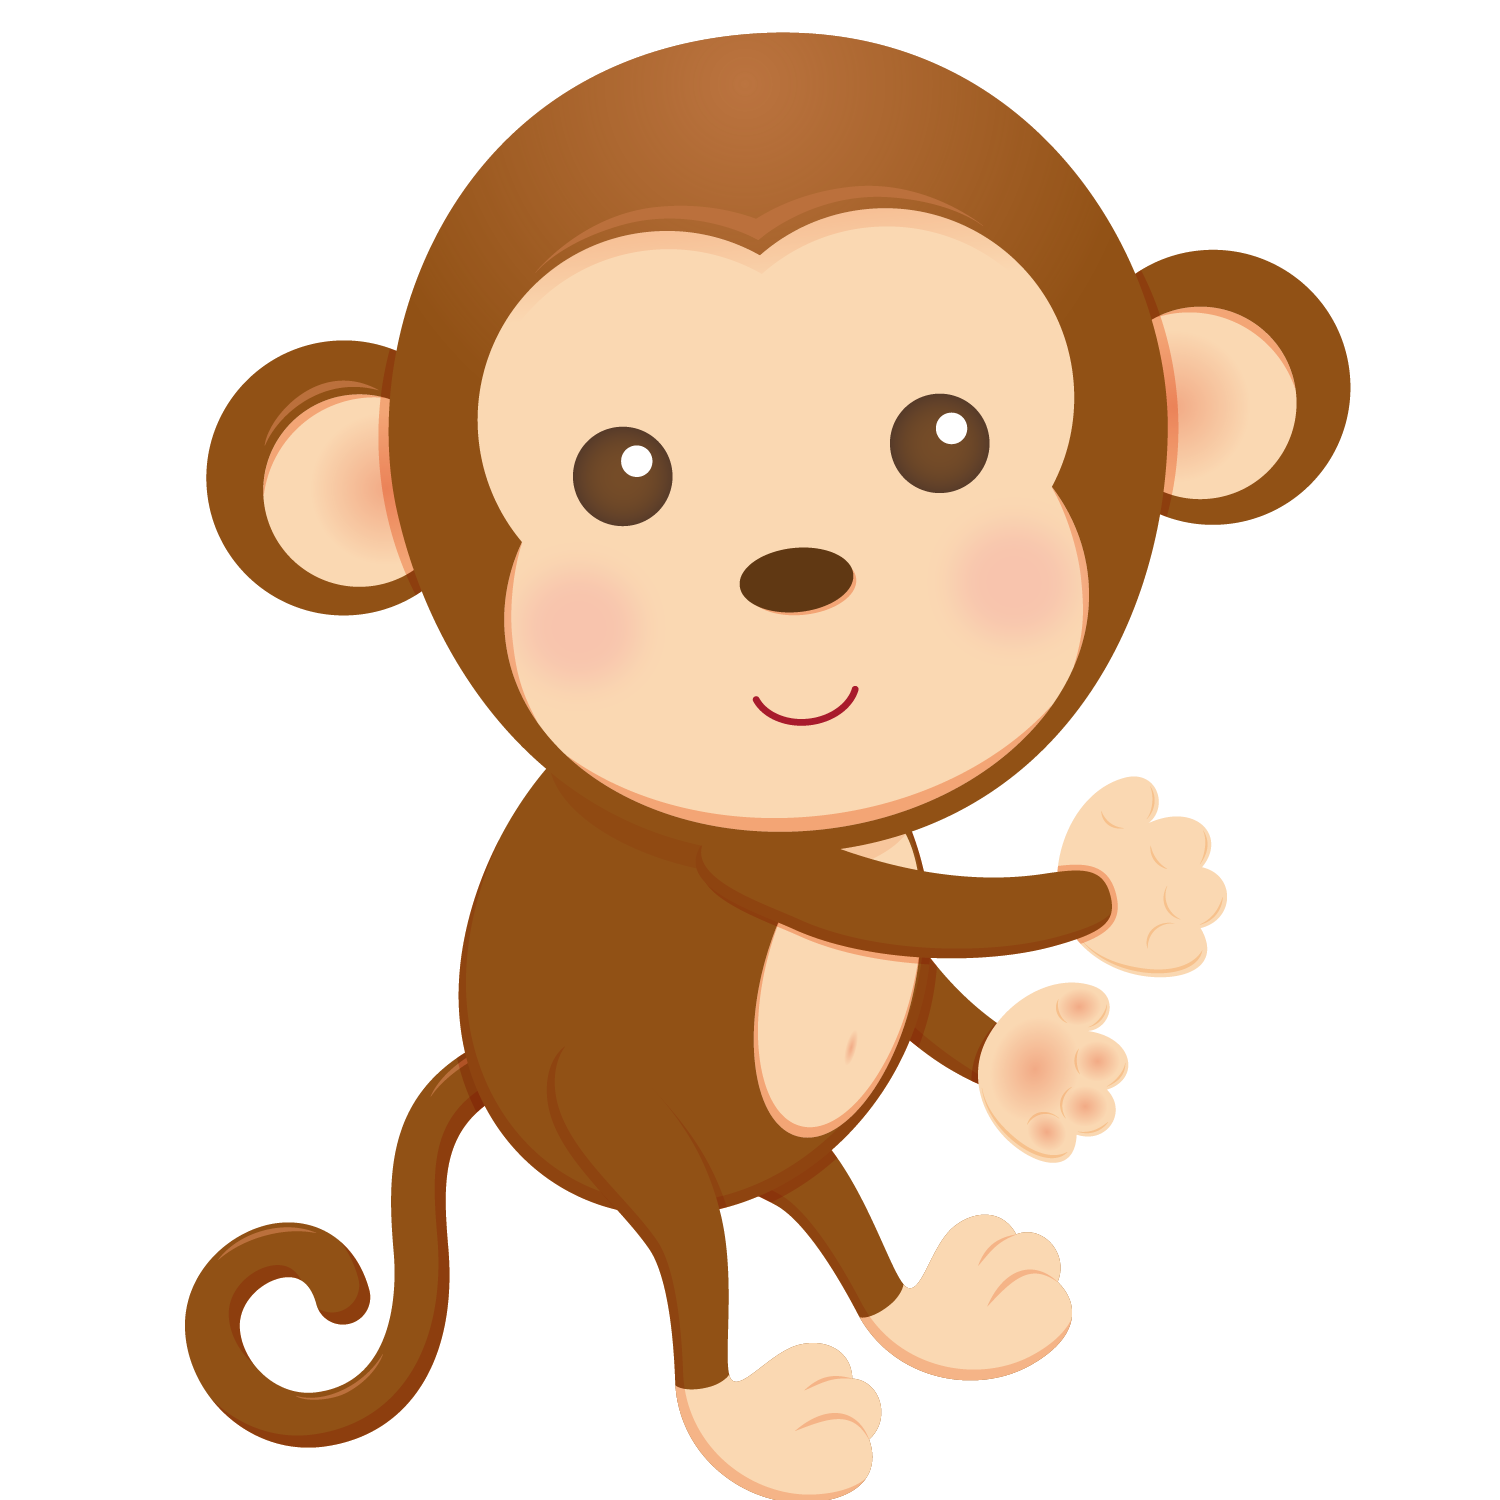 banner download Ape clipart monkey. Free download clip art